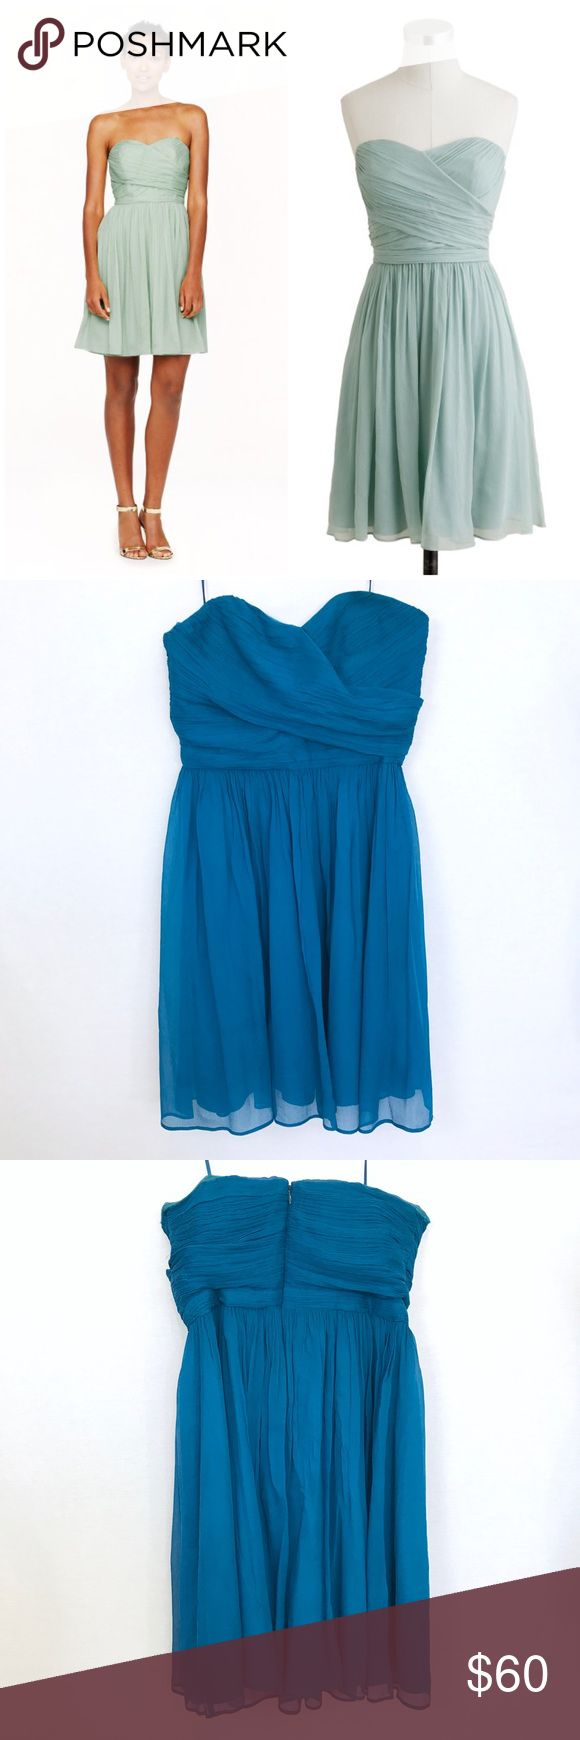 "J. Crew Arabelle Dress in Silk Chiffon Still in good condition. Cover Photo is the model & style but the color is dark teal blue. SIZE & FIT A-line silhouette. Fitted bodice with boning for added support. Falls above knee,  Lay Flat Measurement Approx; waist-13.5"". Pit to Pit-15"". Length from pit to hem-27"". No Trades. No low ball offers. Make a reasonable offer J. Crew Dresses Strapless"